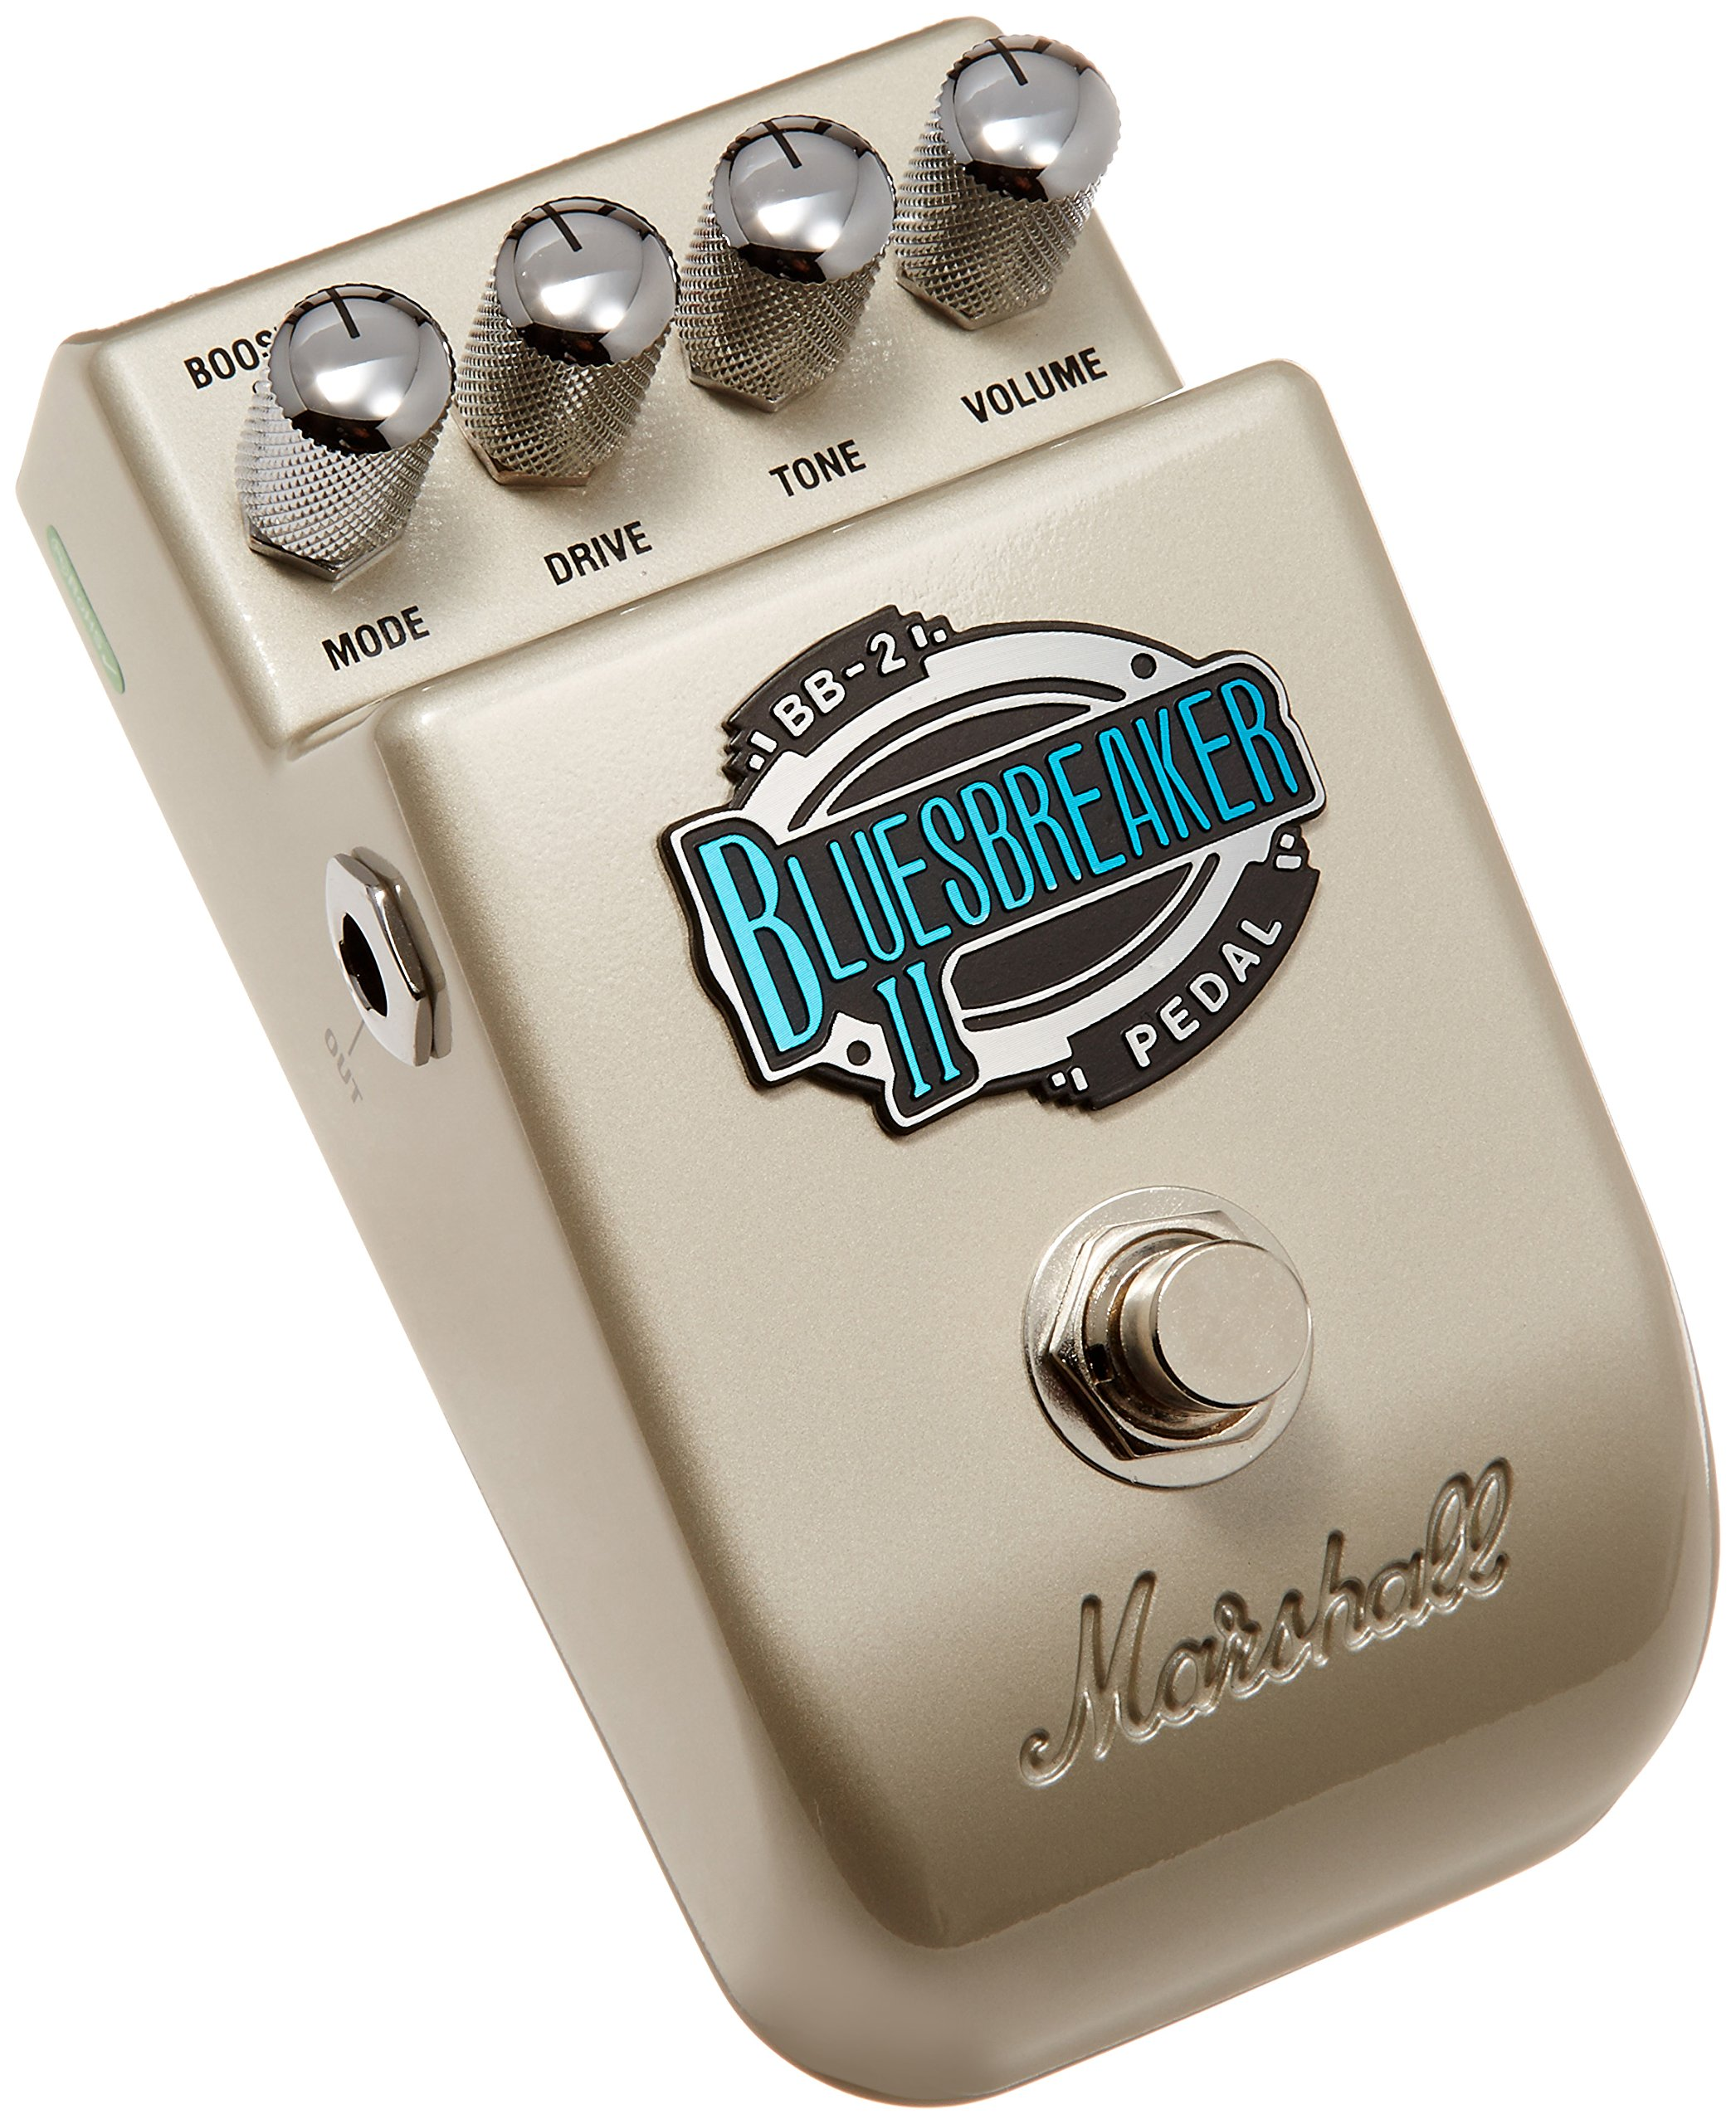 Marshall BB-2 Blues Breaker Effects Pedal by Marshall